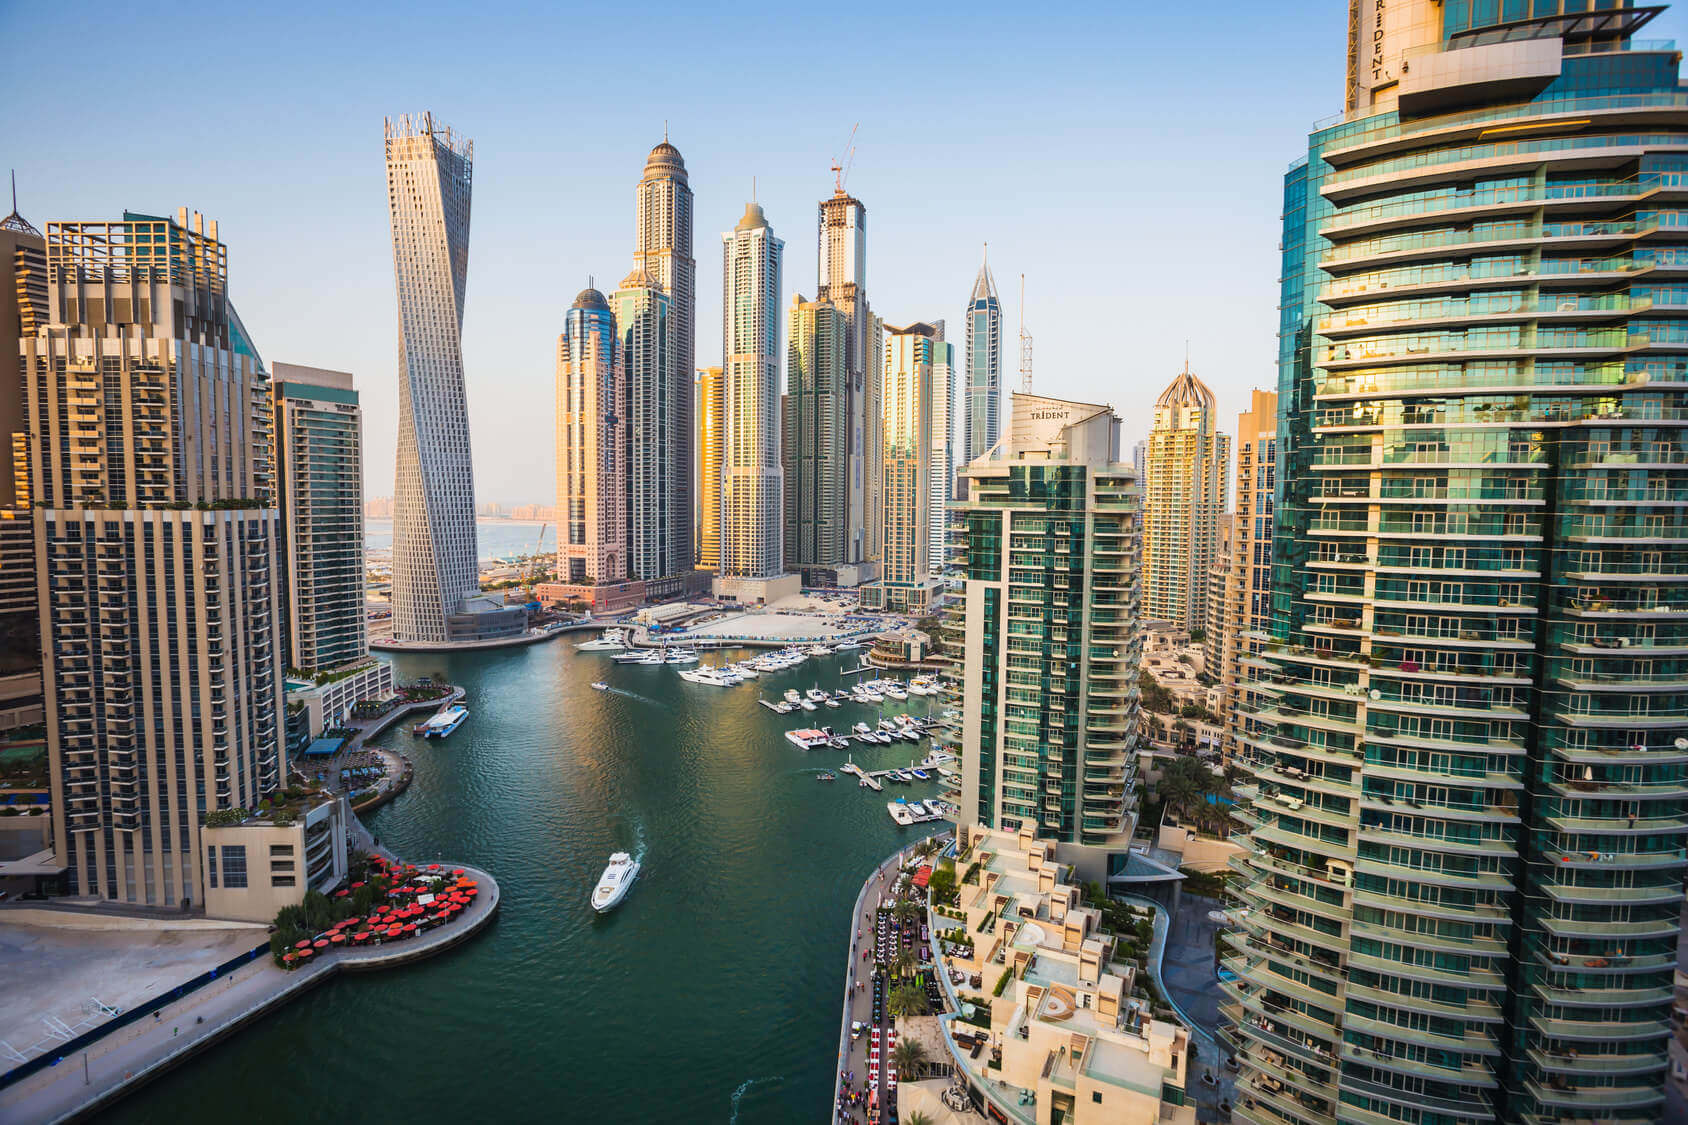 DubaI-Free-Zone How to Start Your Company in Dubai and Get Personal Residence